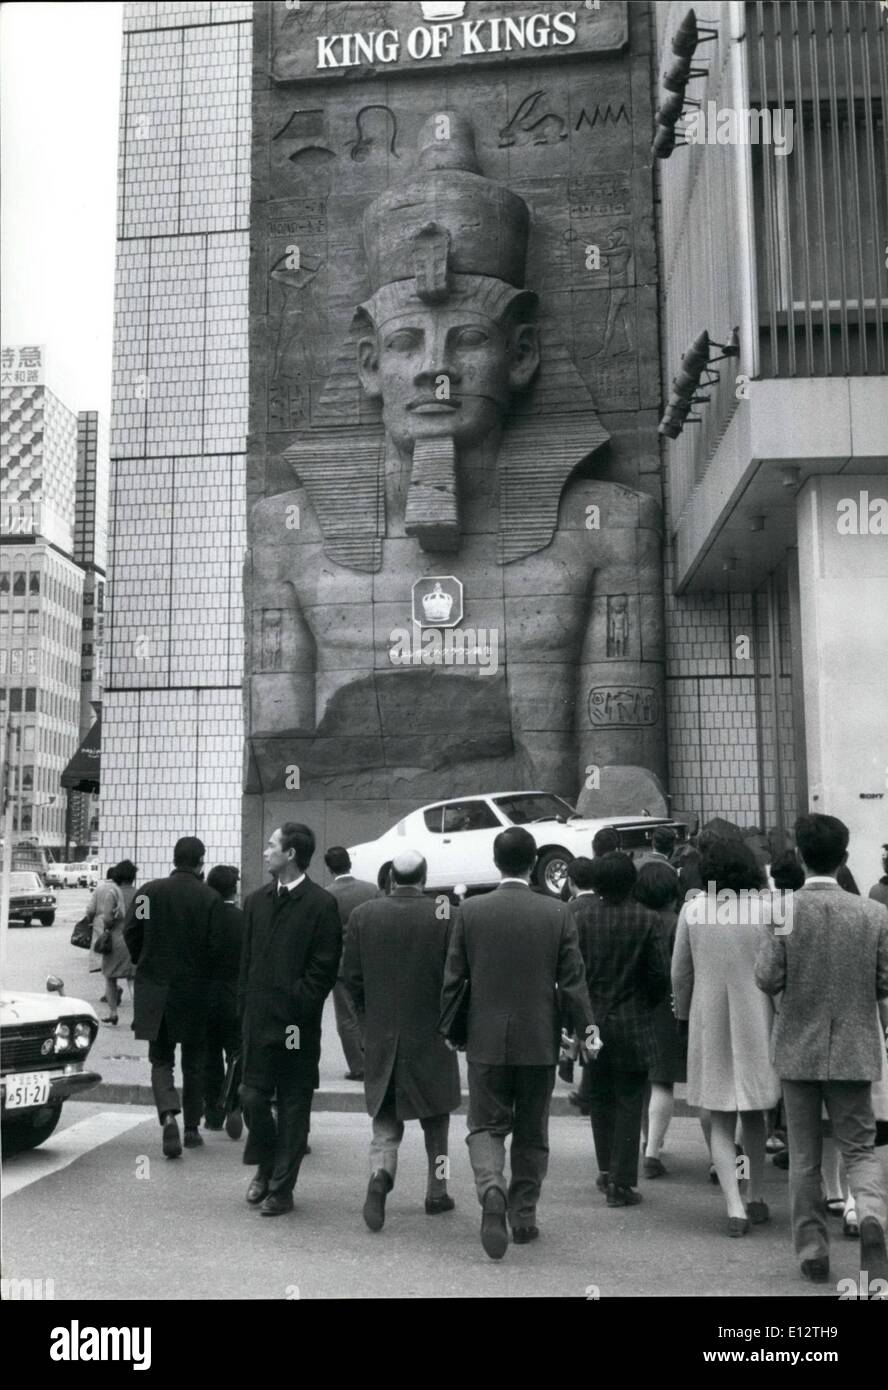 Feb. 25, 2012 - King ''Tut'' in Tokyo; A huge replica of the ancient Egyptian Pharaoh Tut anak-amen, has been built on the wall - Stock Image